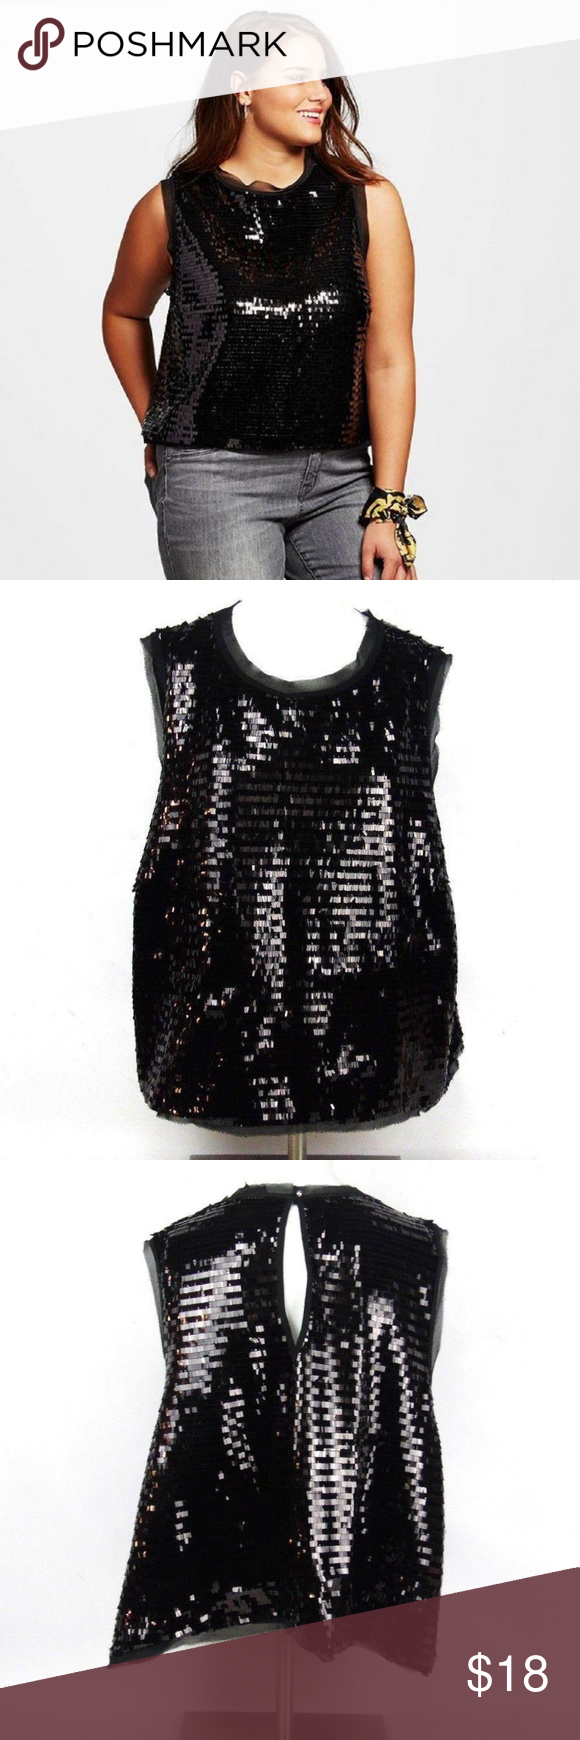 e797dcadc24abc Who What Wear Black Sequin Sleeveless Blouse Top Materials: Shell:100%  Polyester. Lining: 100% Polyester Cleaning and Care: Turn garment inside  out.